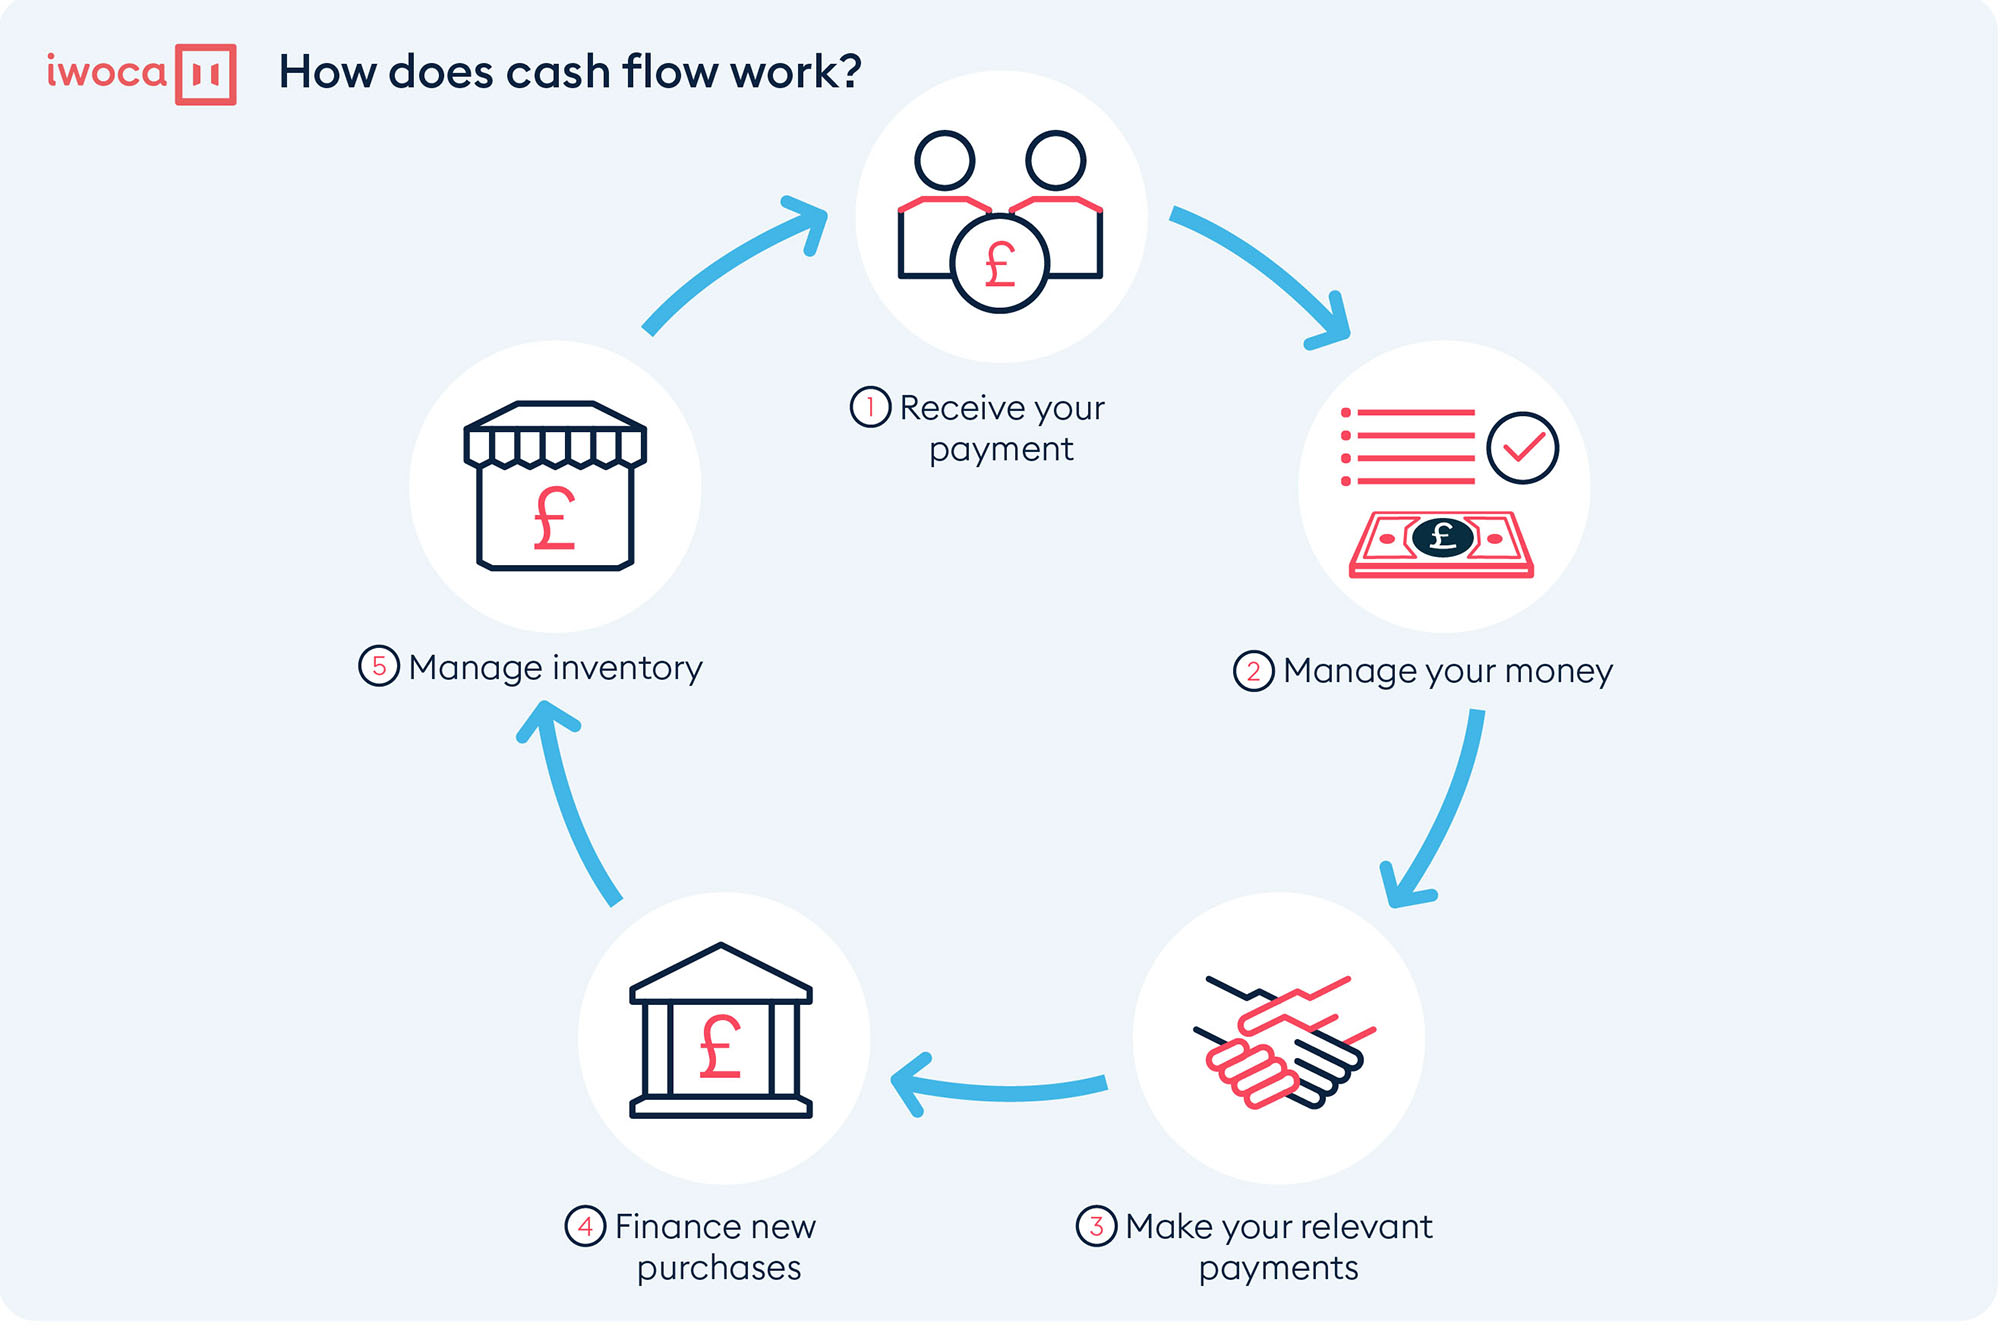 How does cash flow work